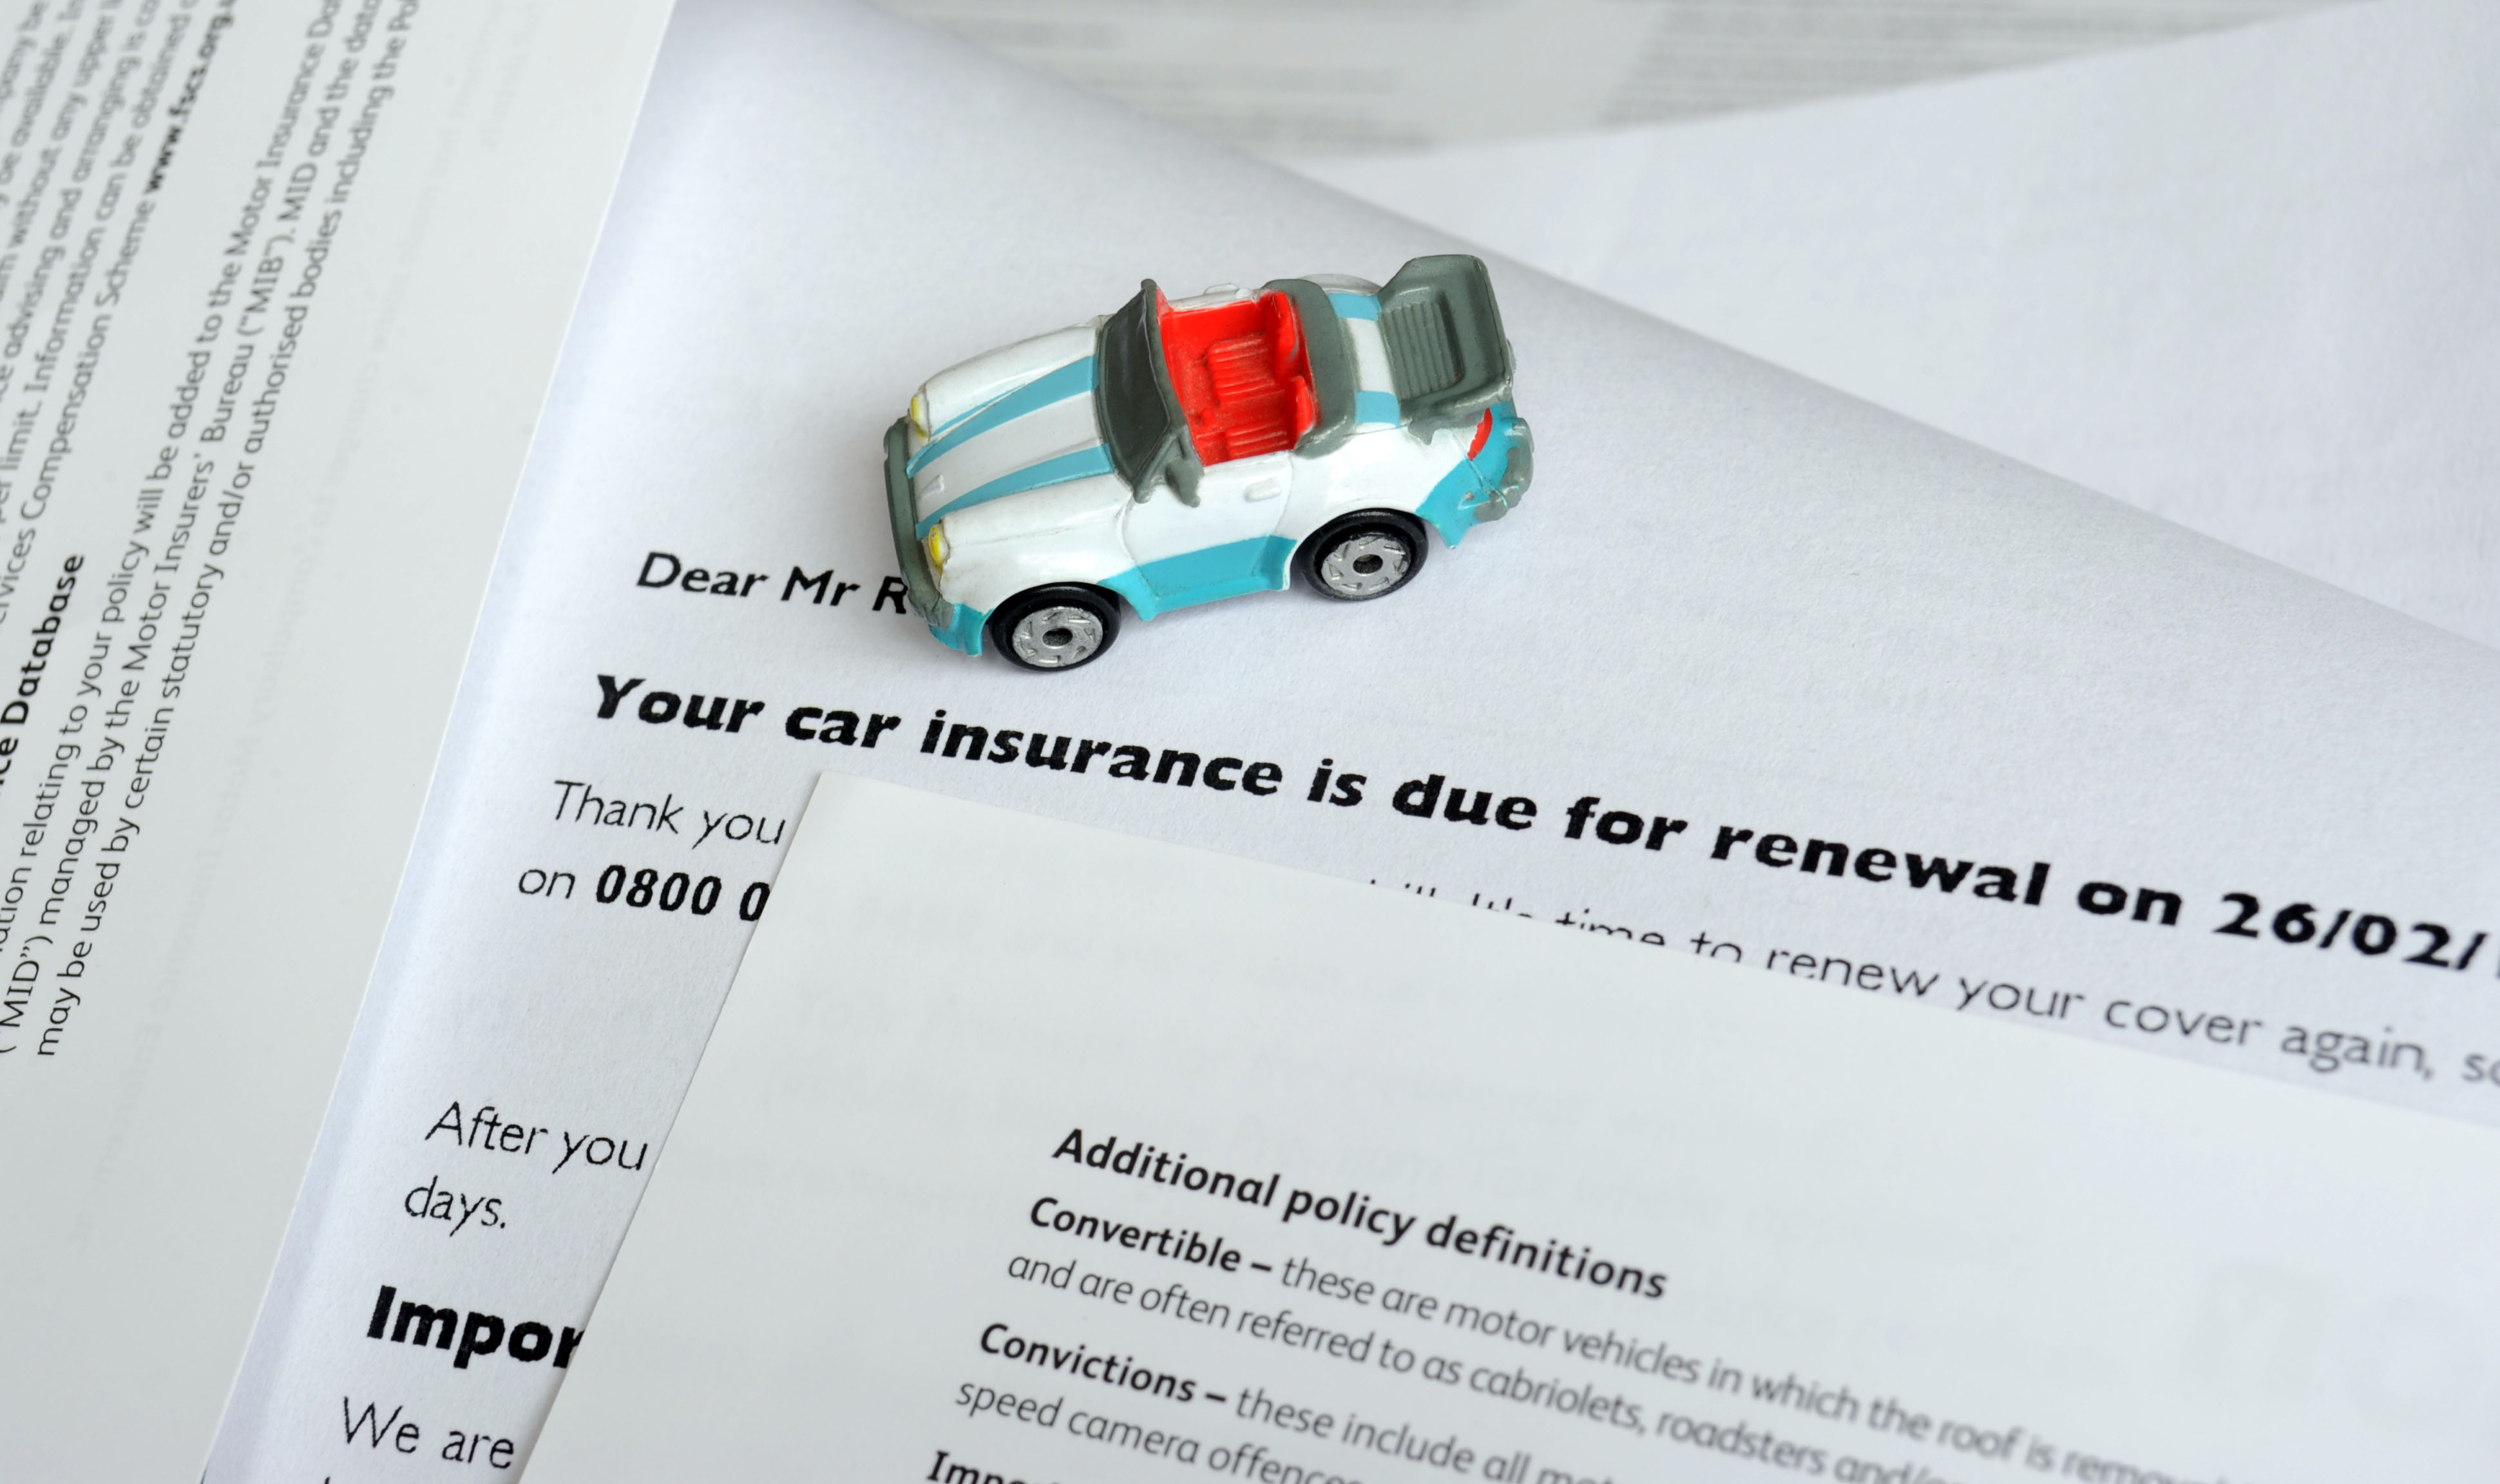 Motorists can get up to £50 off their car insurance bill if they're struggling during the coronavirus crisis